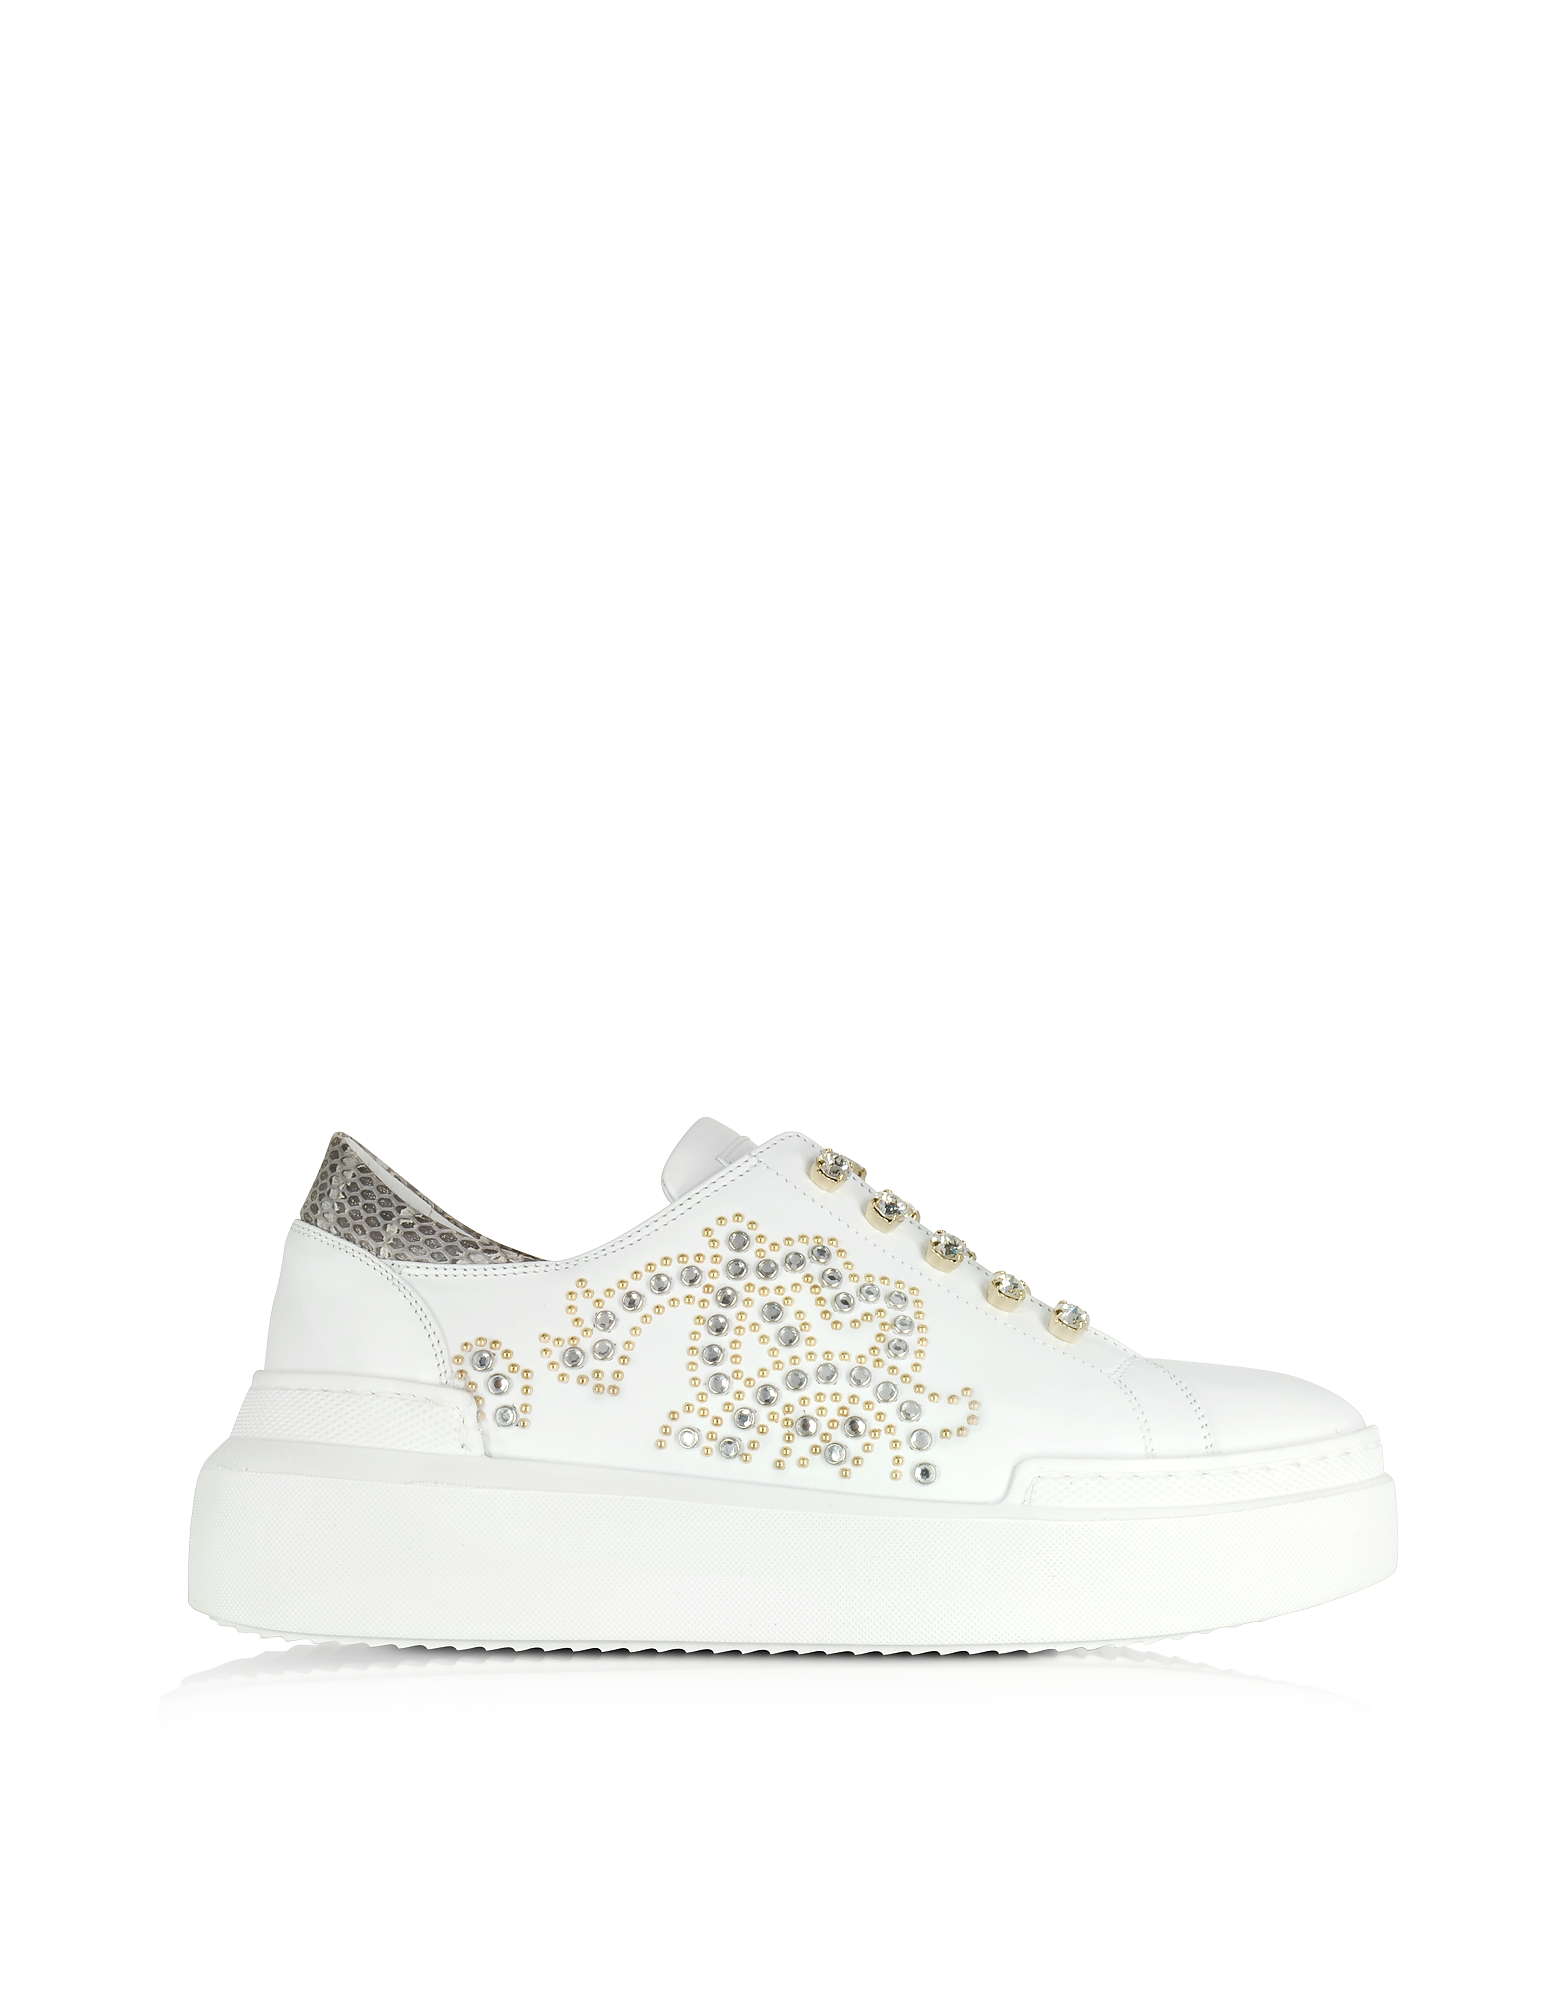 Roberto Cavalli Shoes, Pure White Leather and Crystals Slip on Sneakers